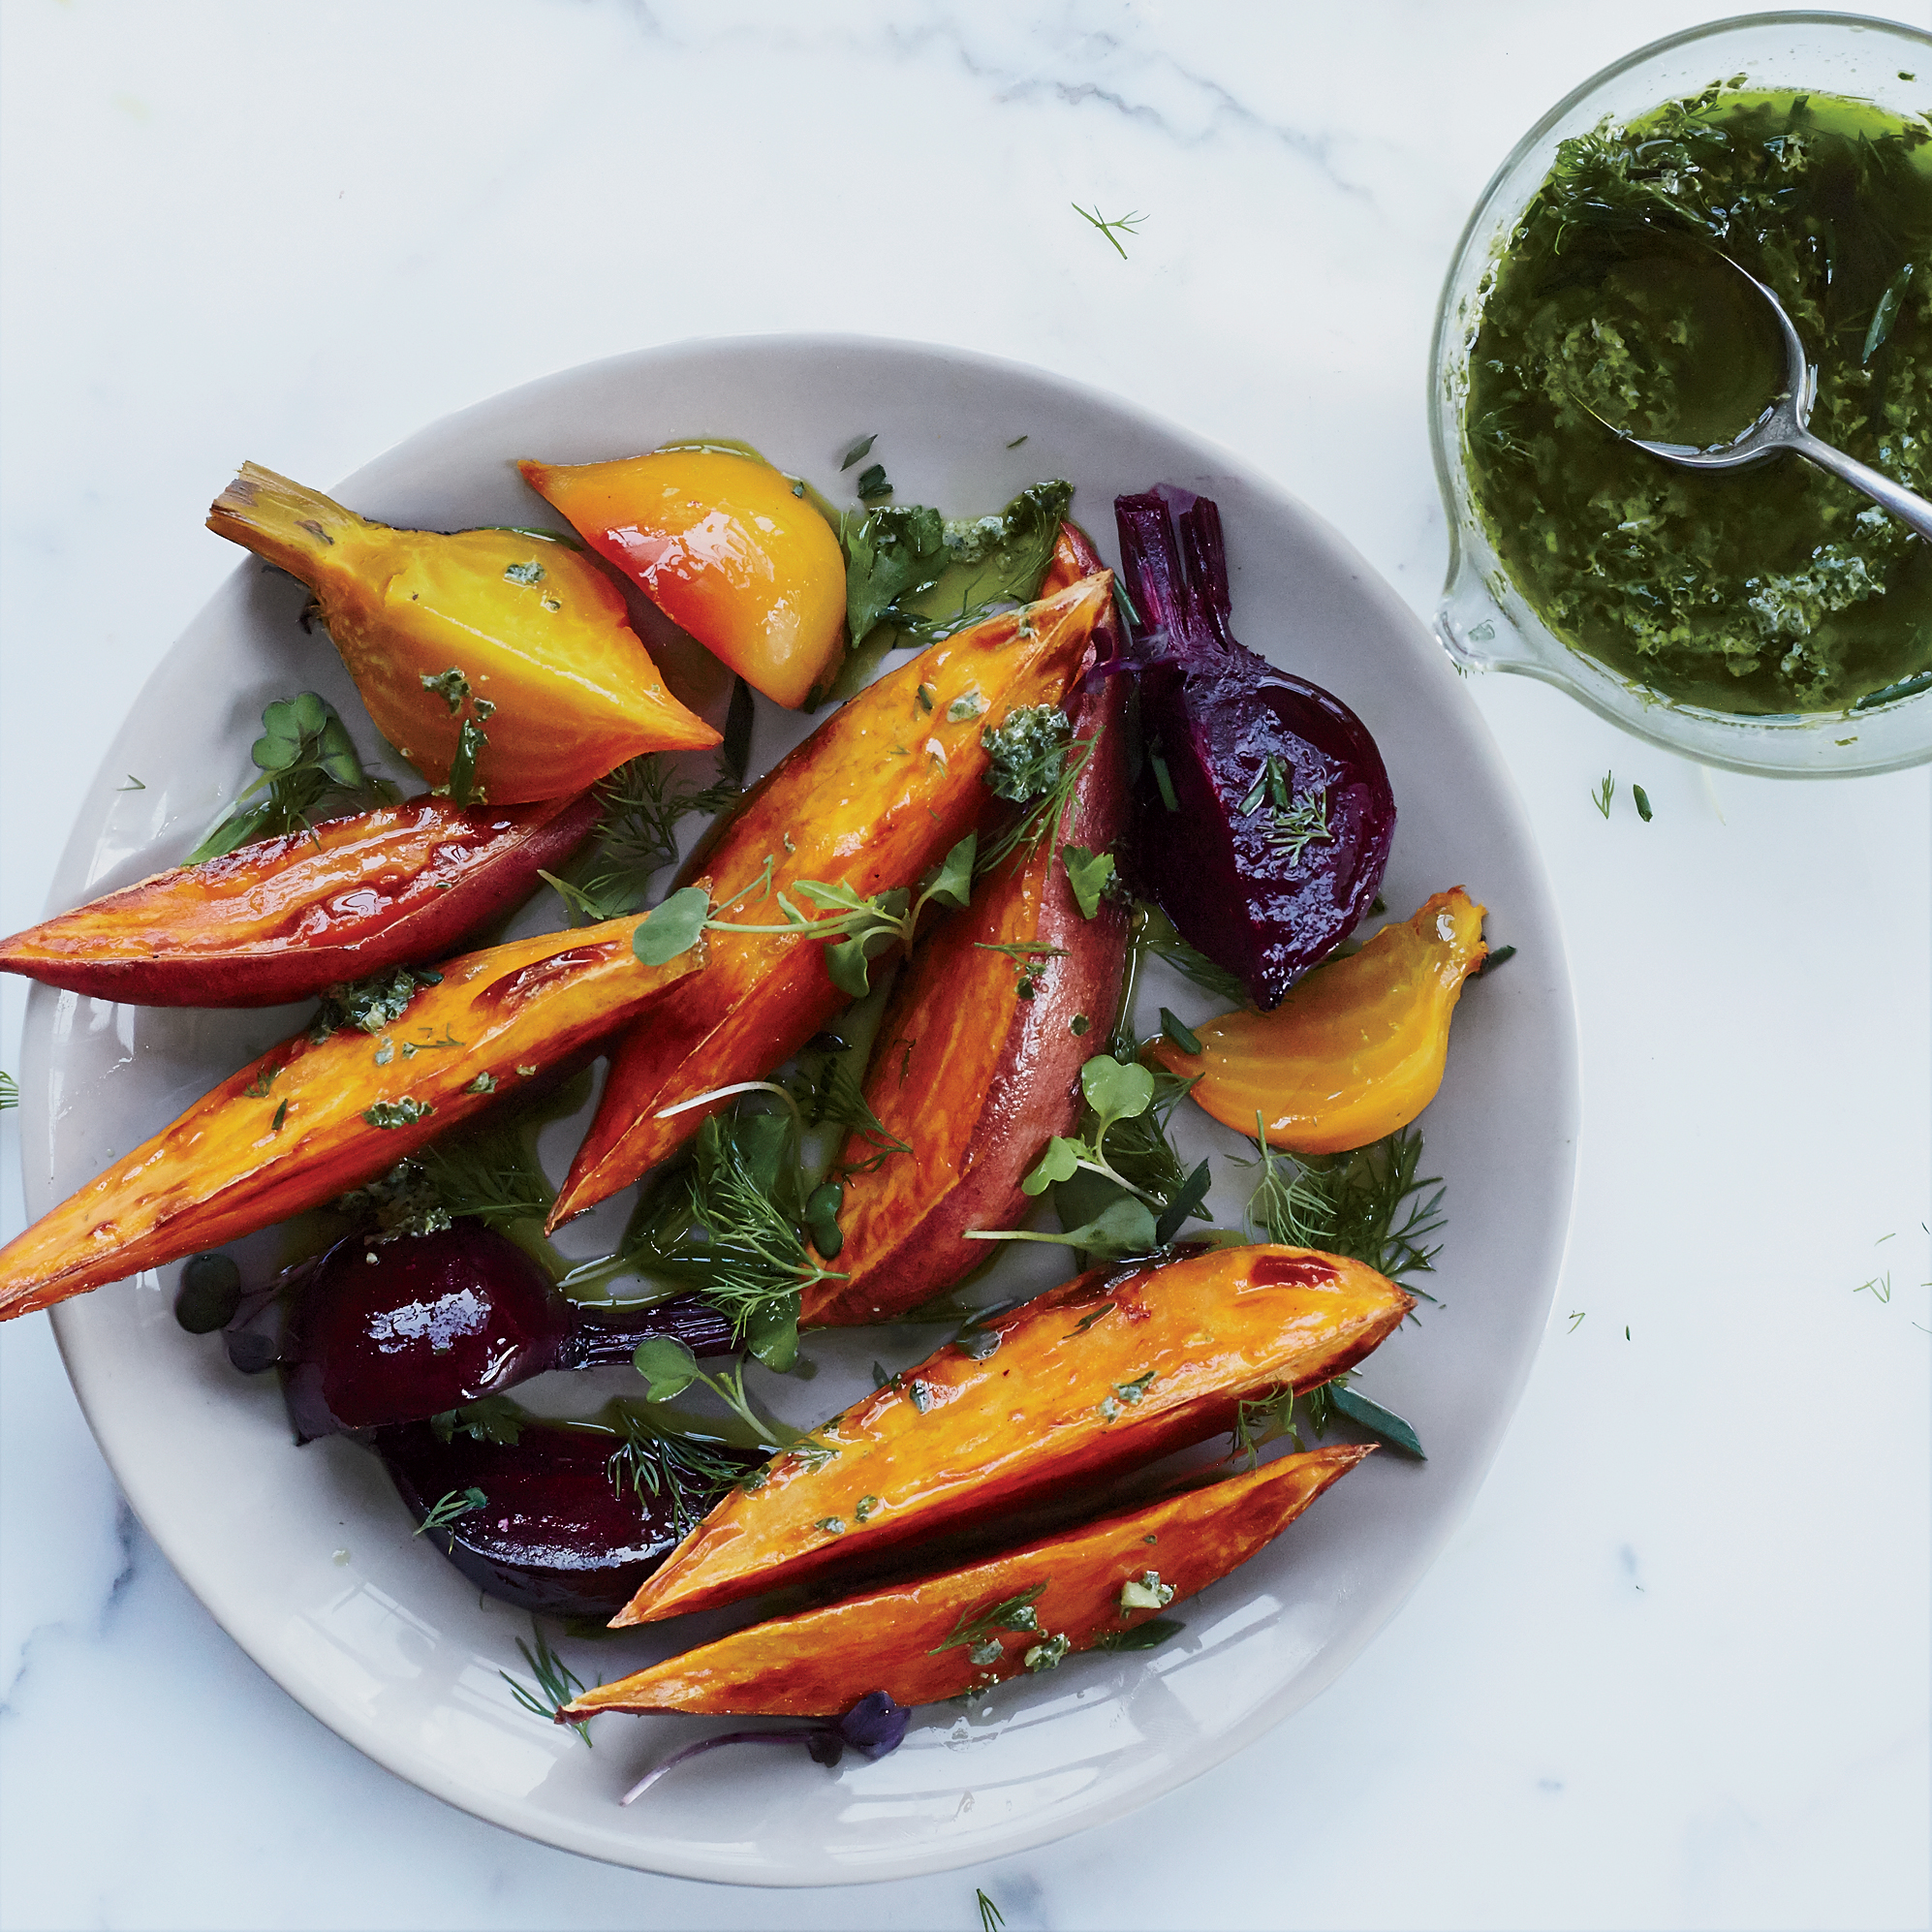 Kale-Buttermilk Dressing for Roasted Vegetables